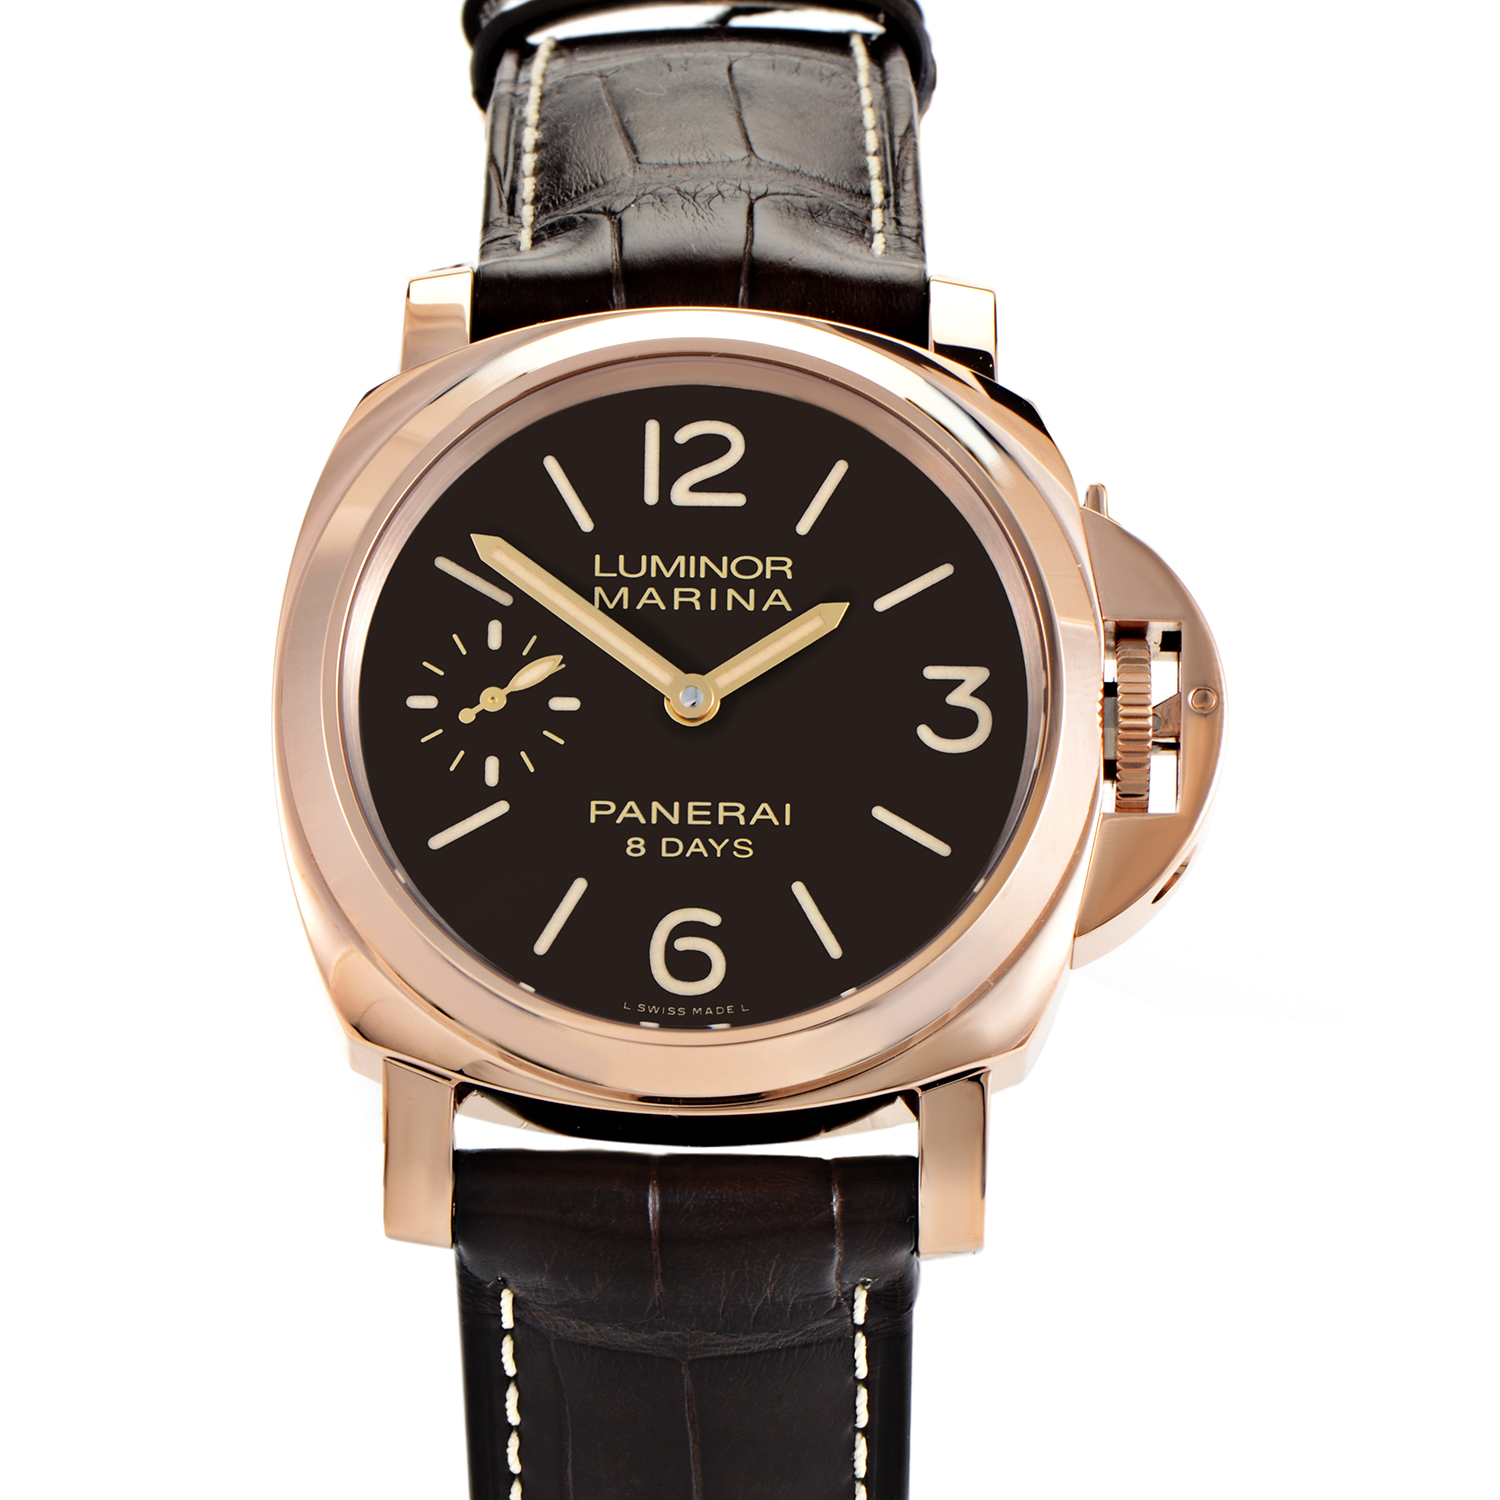 Luminor Marina 8 Days Oro Rosso Men's Watch PAM00511